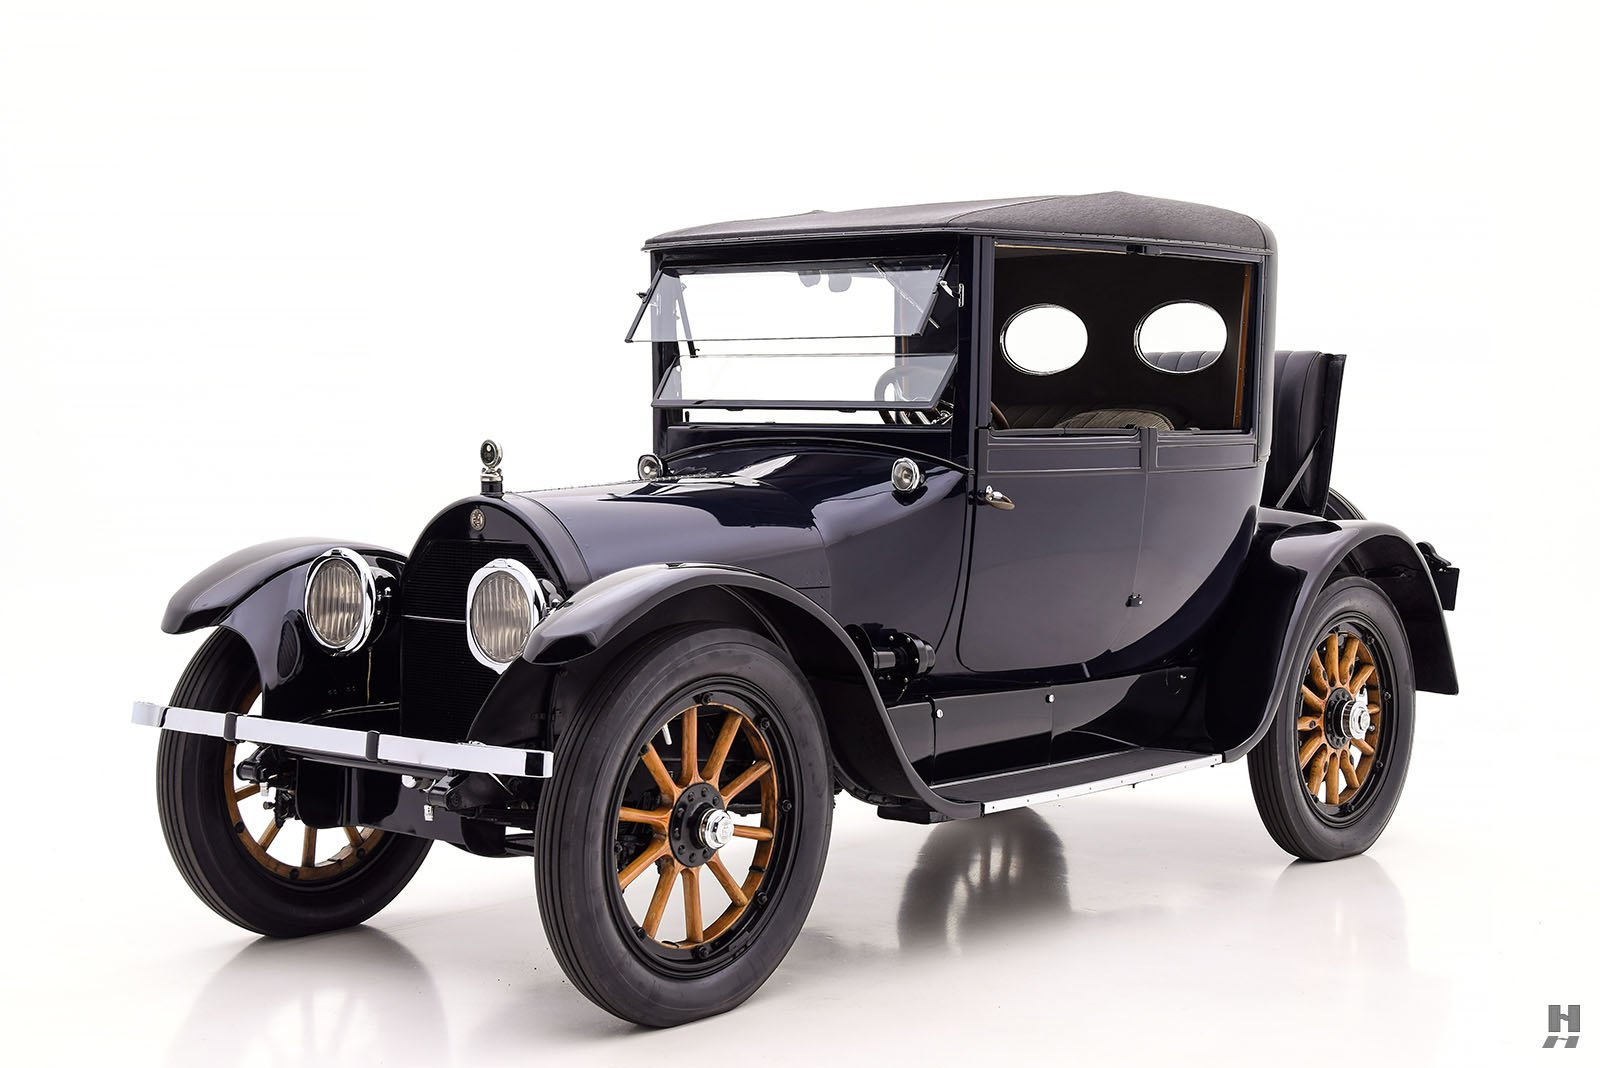 1917 Cadillac Type 57 Opera Coupe For Sale | Buy Classic Cars ...